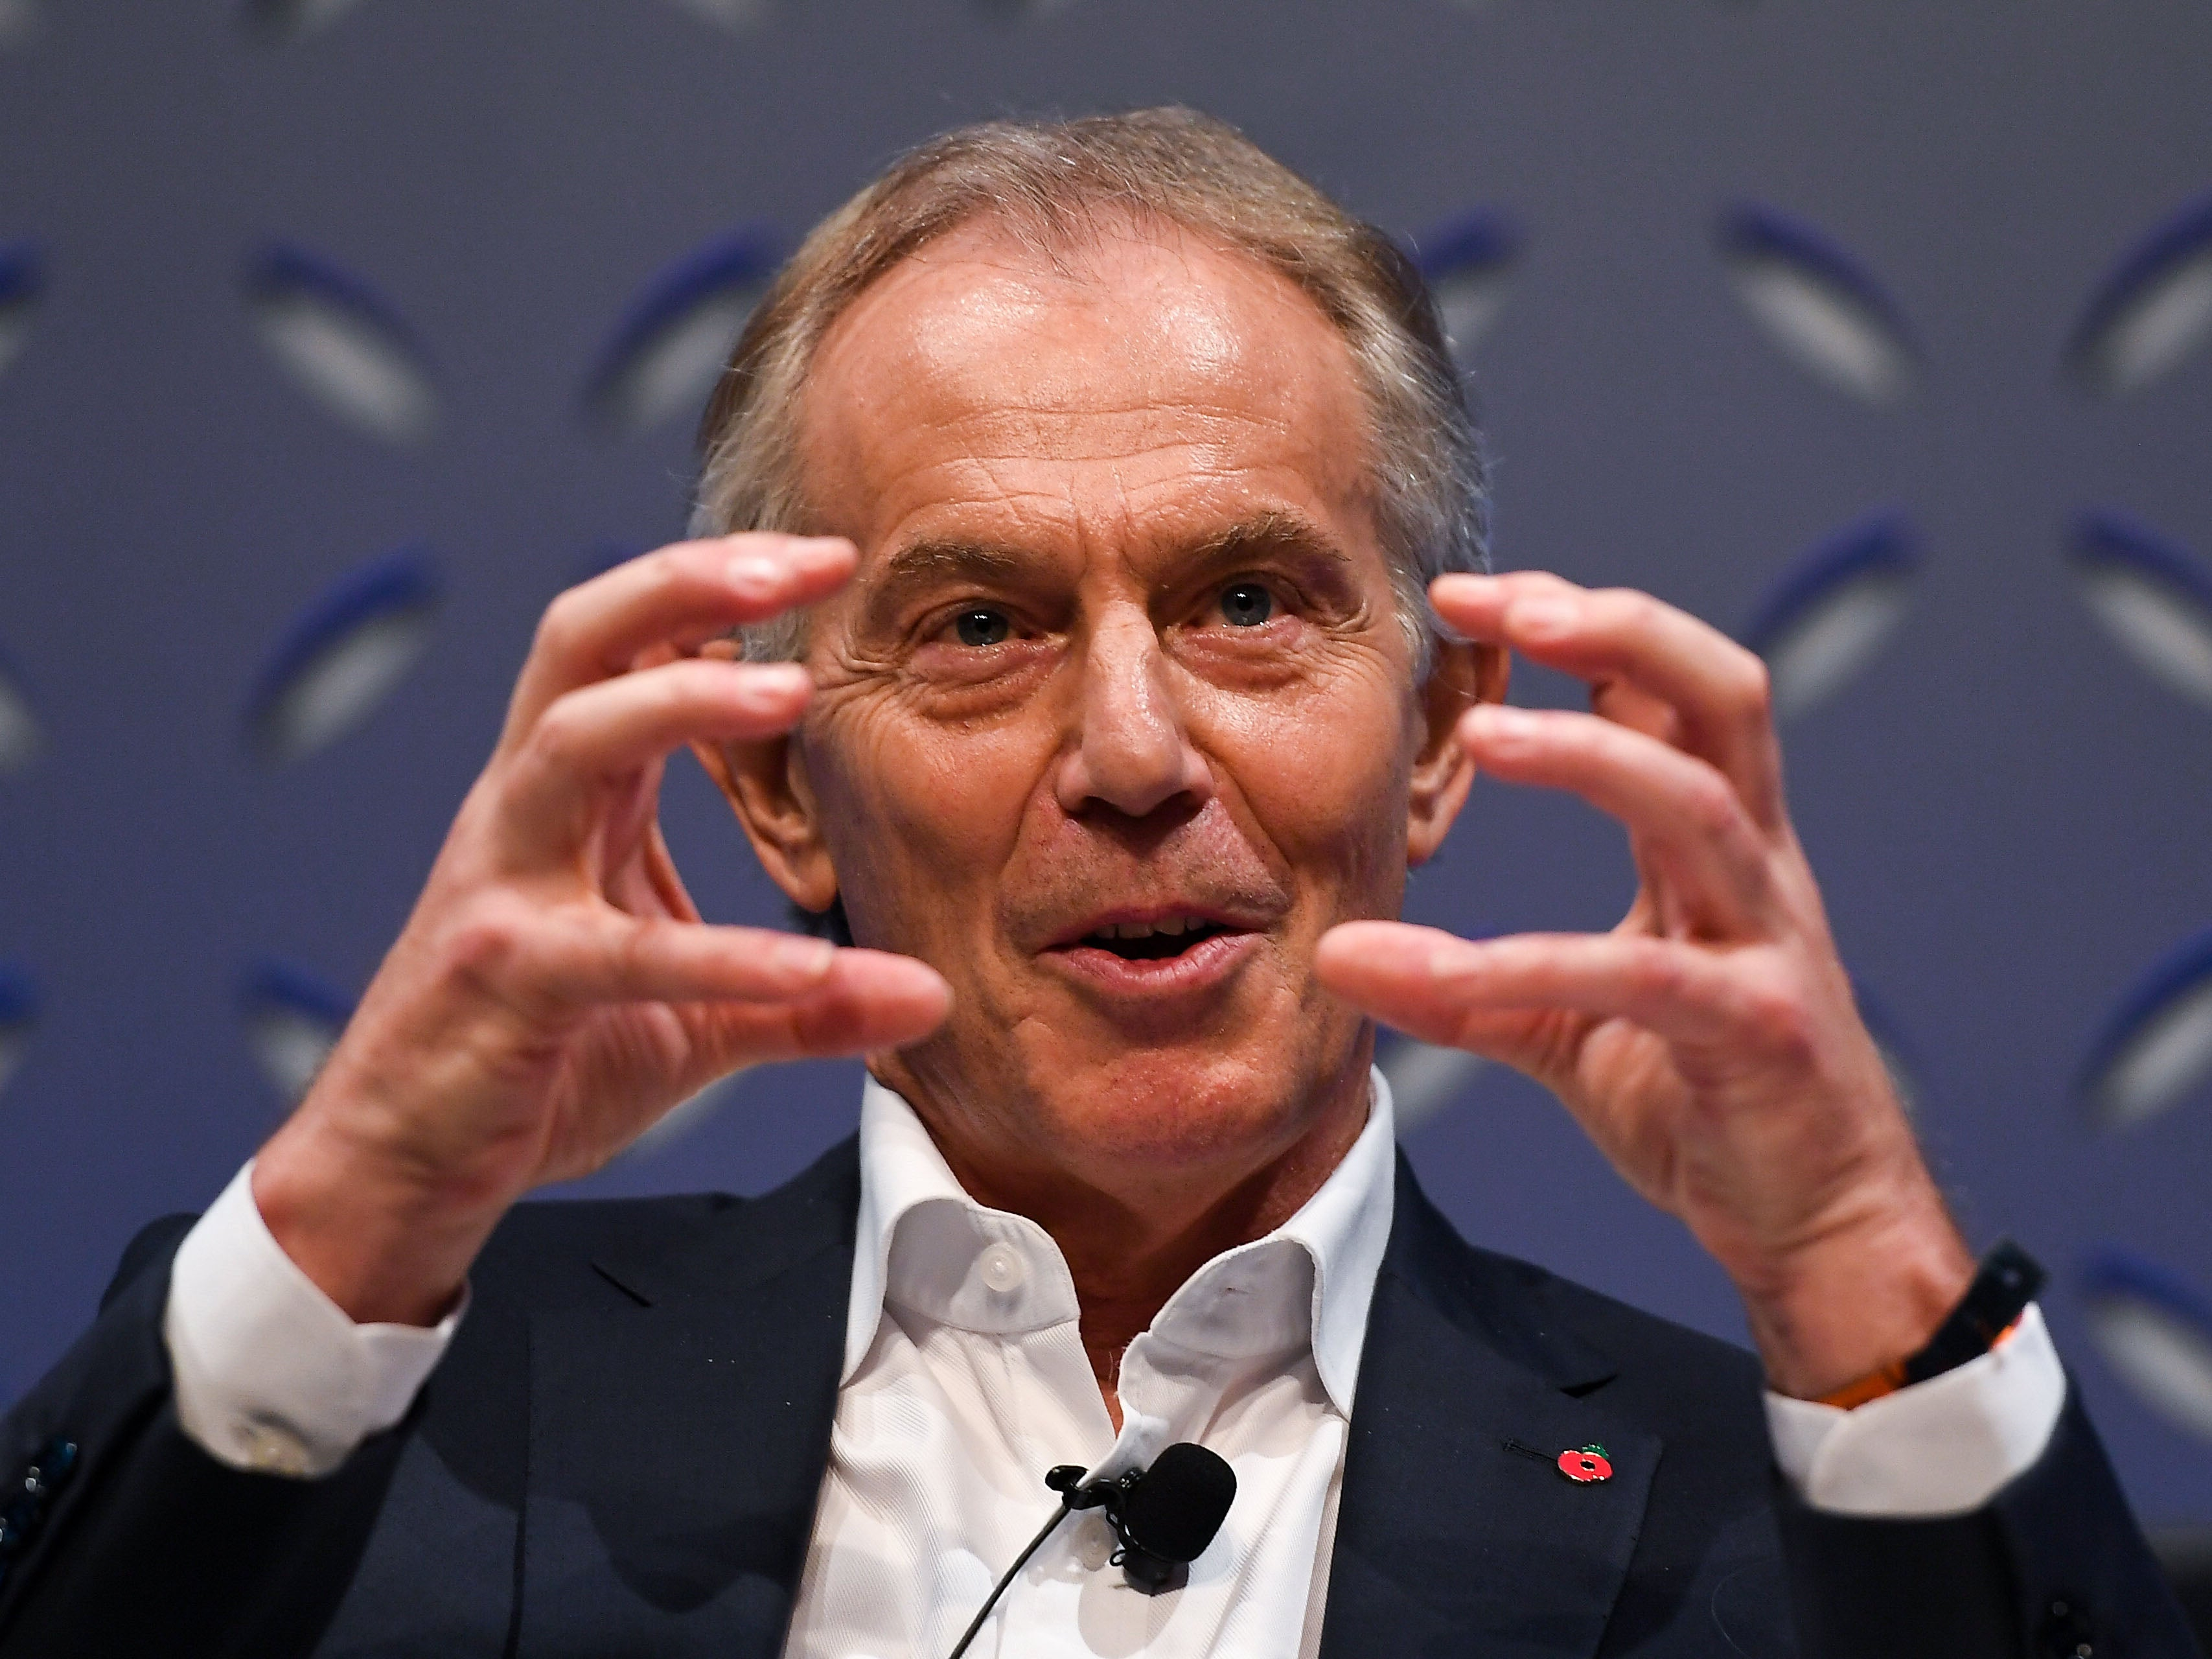 Say what you like about Tony Blair, he knows how to analyse politics